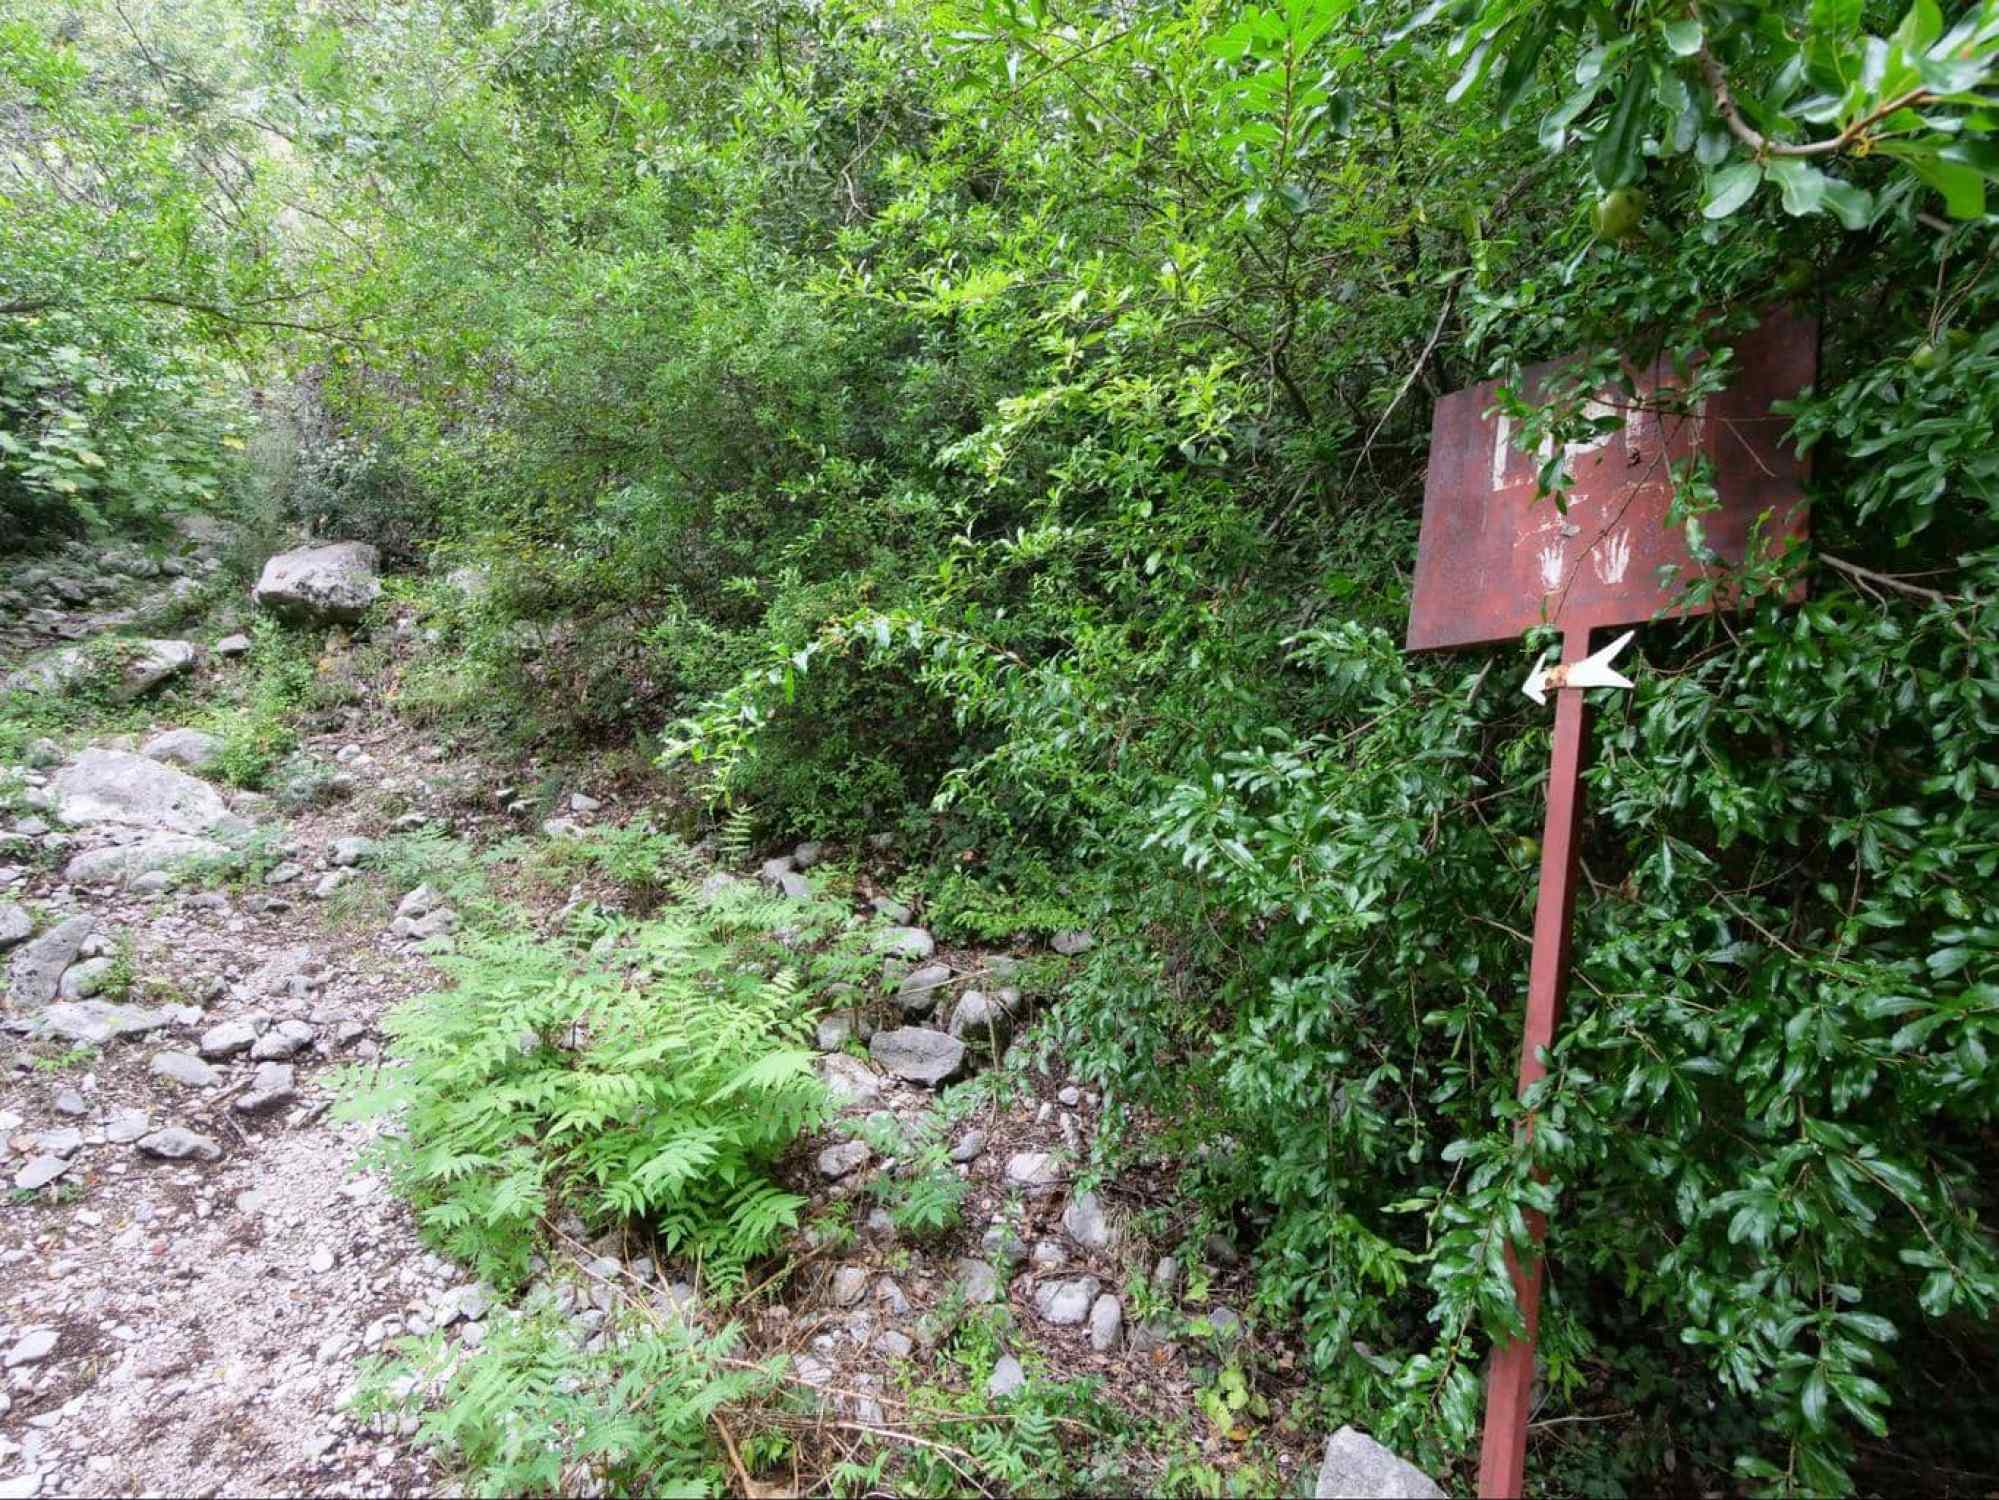 Sign to Lipci Rock drawings